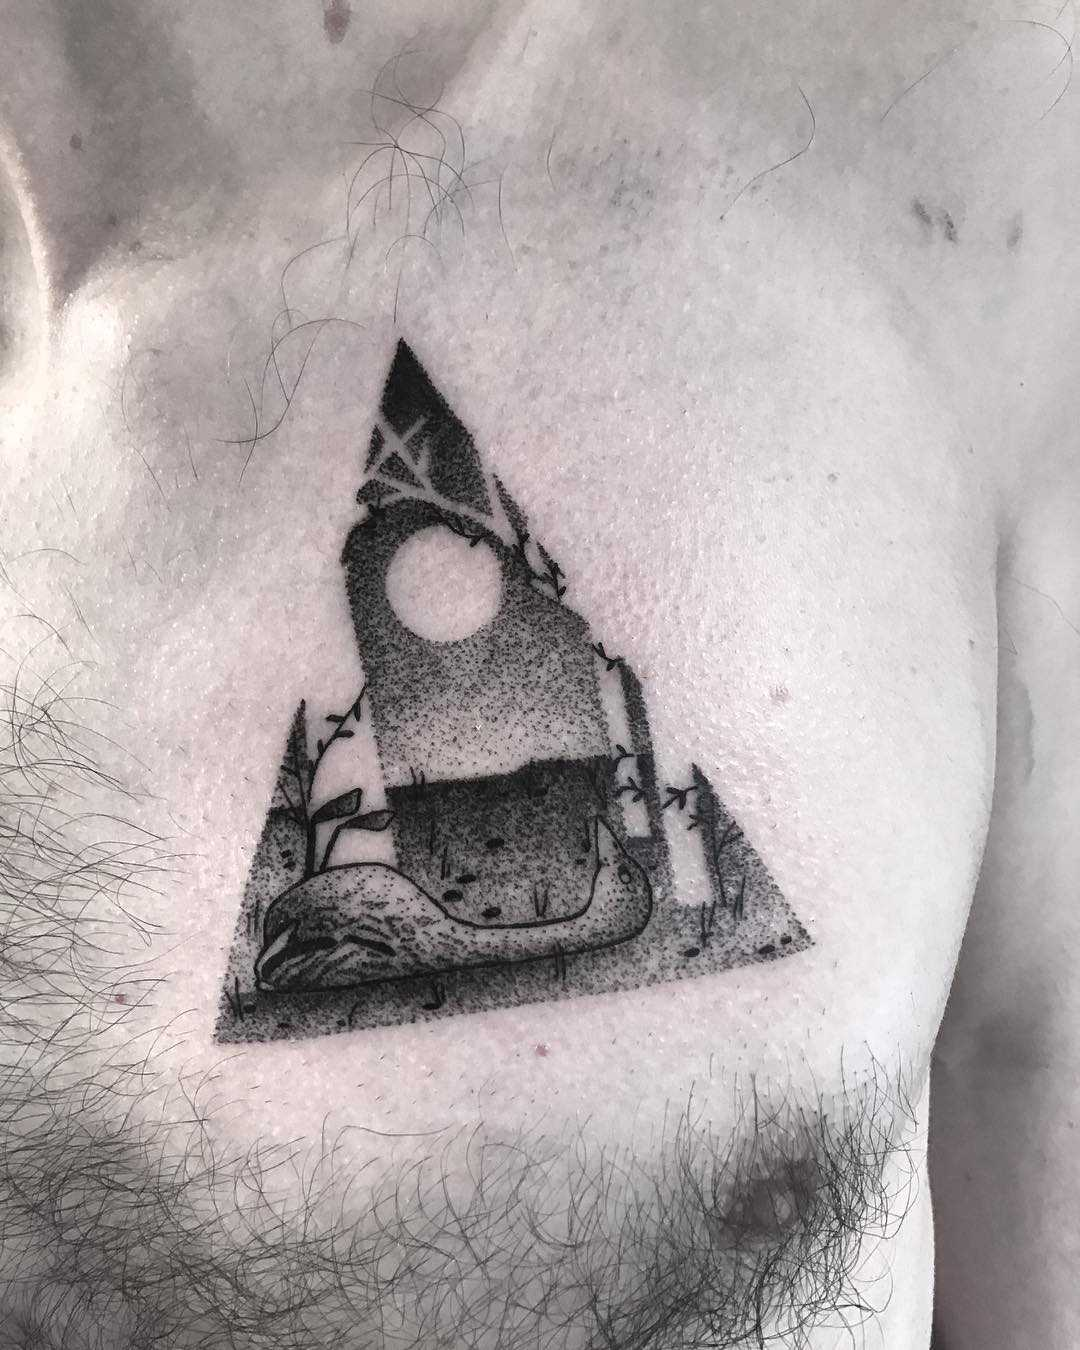 Chest tattoo by Wagner Basei inspired by Jon Klassen's art